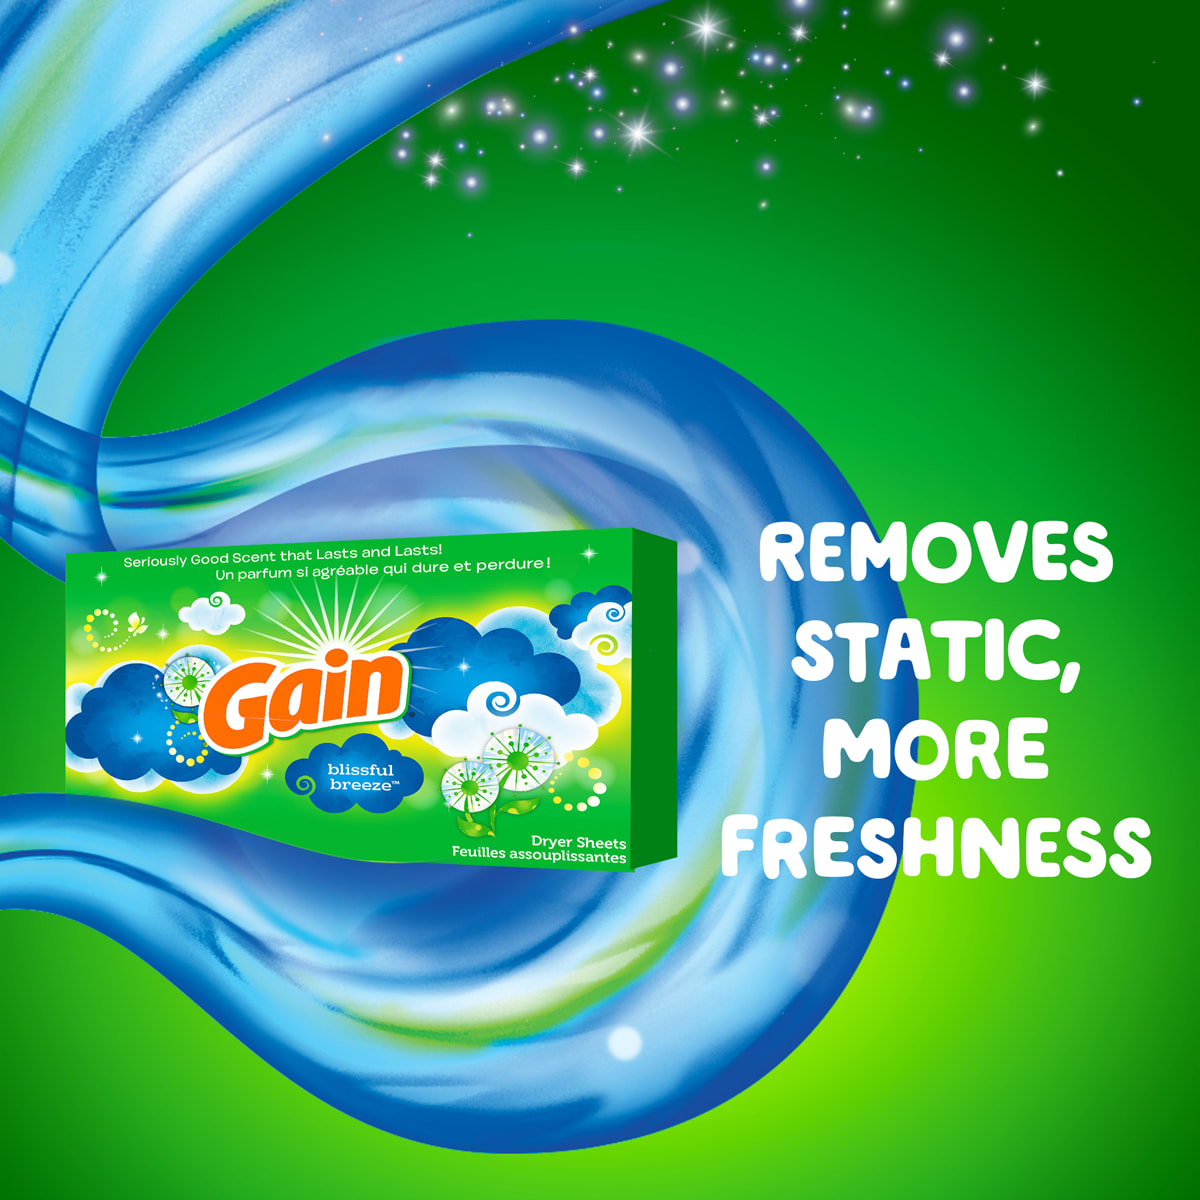 Gain Blissful Breeze Dryer Sheets removes static and provides more freshness